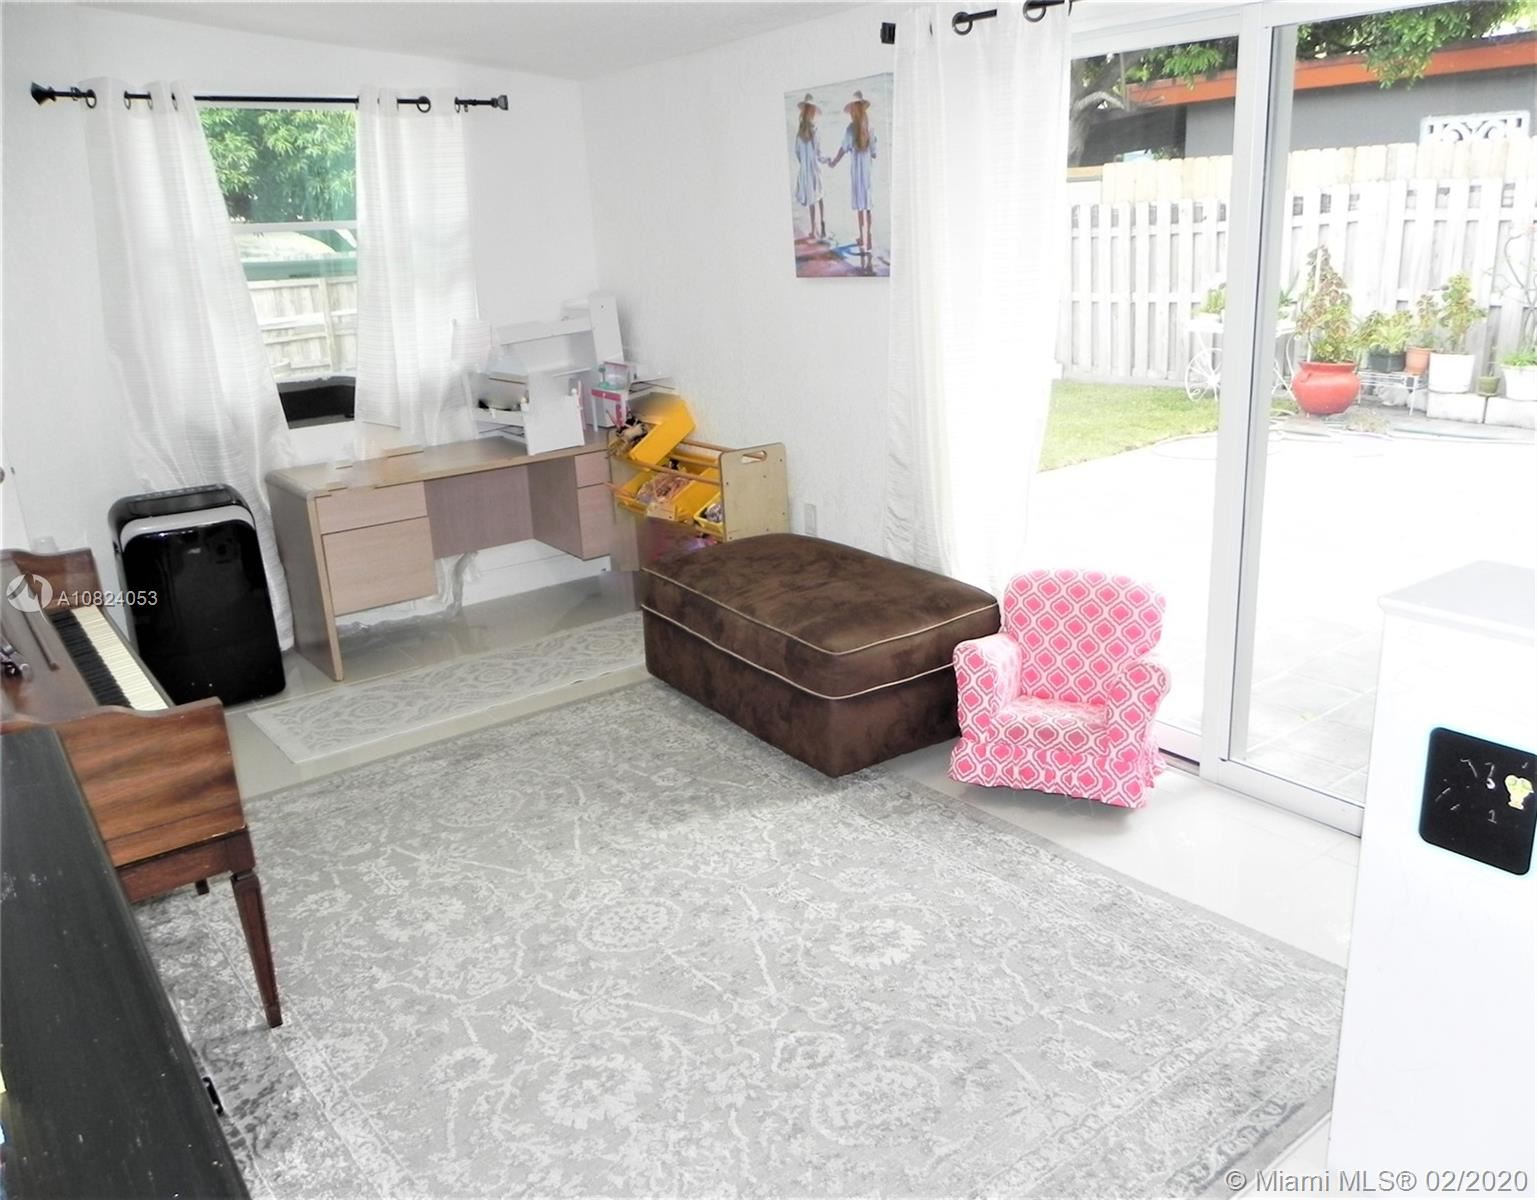 Photo 15 of Listing MLS a10824053 in 1531 Johnson St Hollywood FL 33020